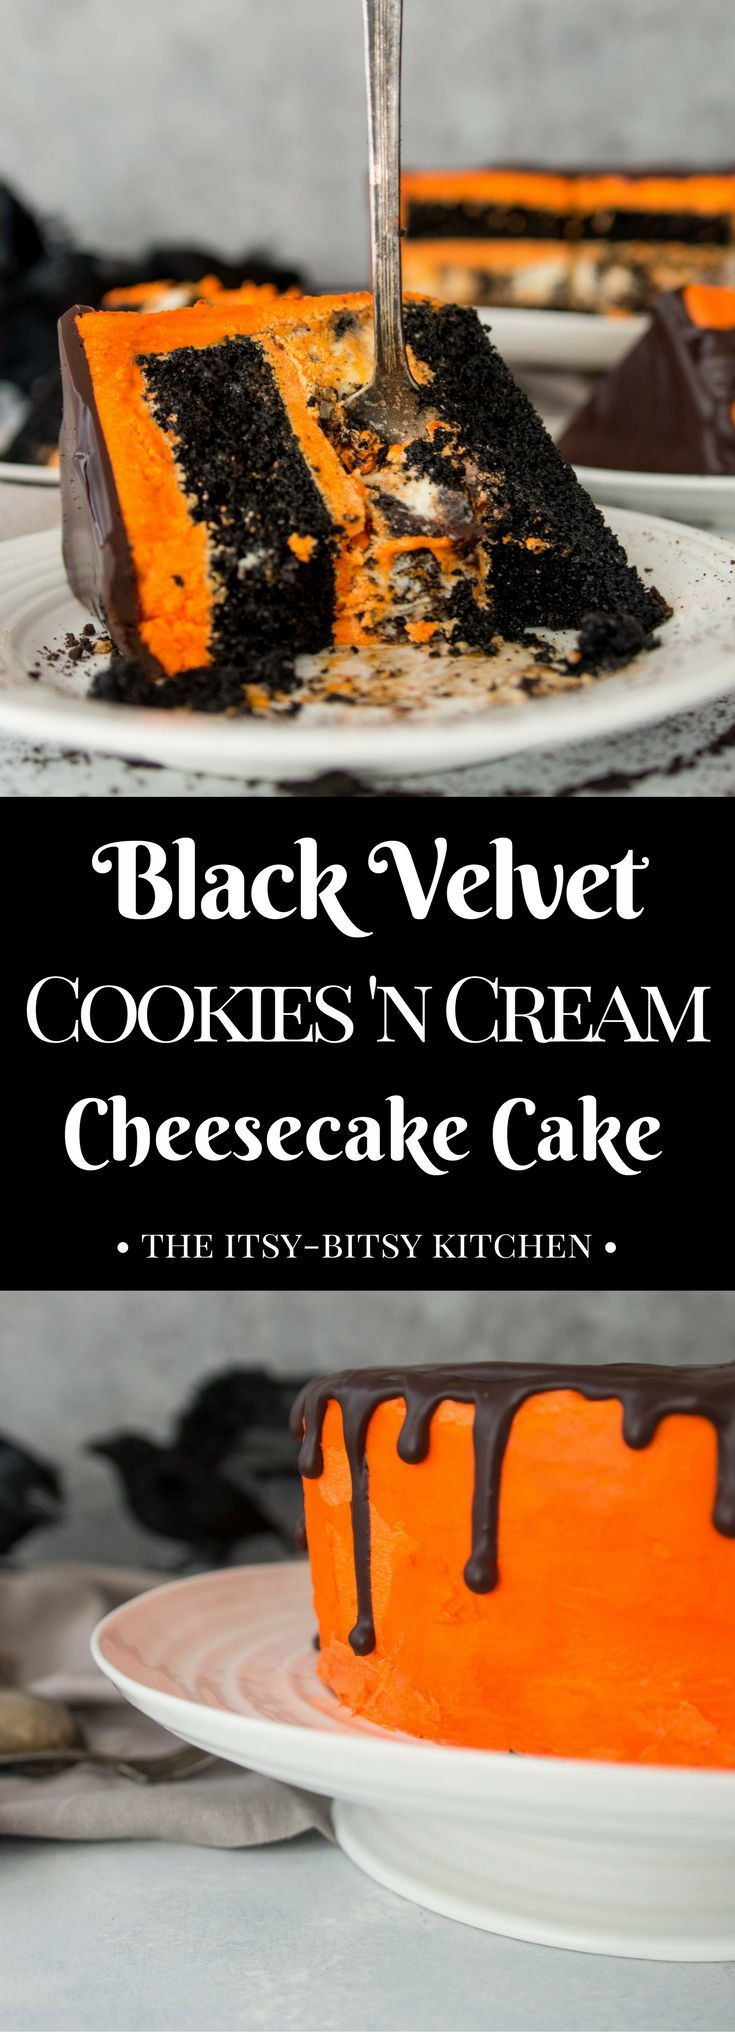 Recipe for black velvet cookies 'n cream cheesecake cake--full of chocolate and Halloween spirit! Perfect #Halloween party food!